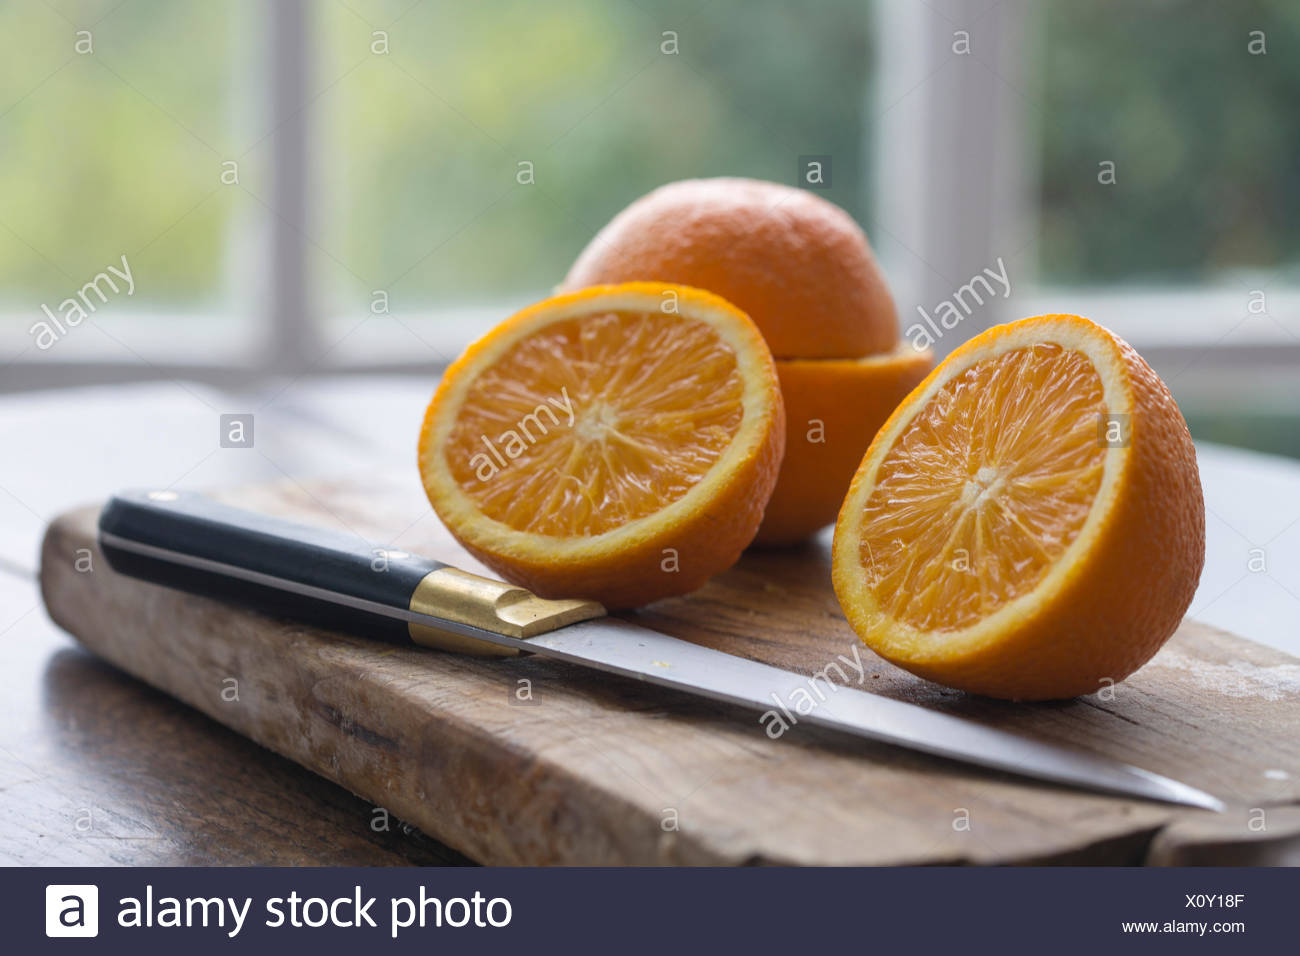 cut oranges on wood baord on table against window framed garden background - Stock Image